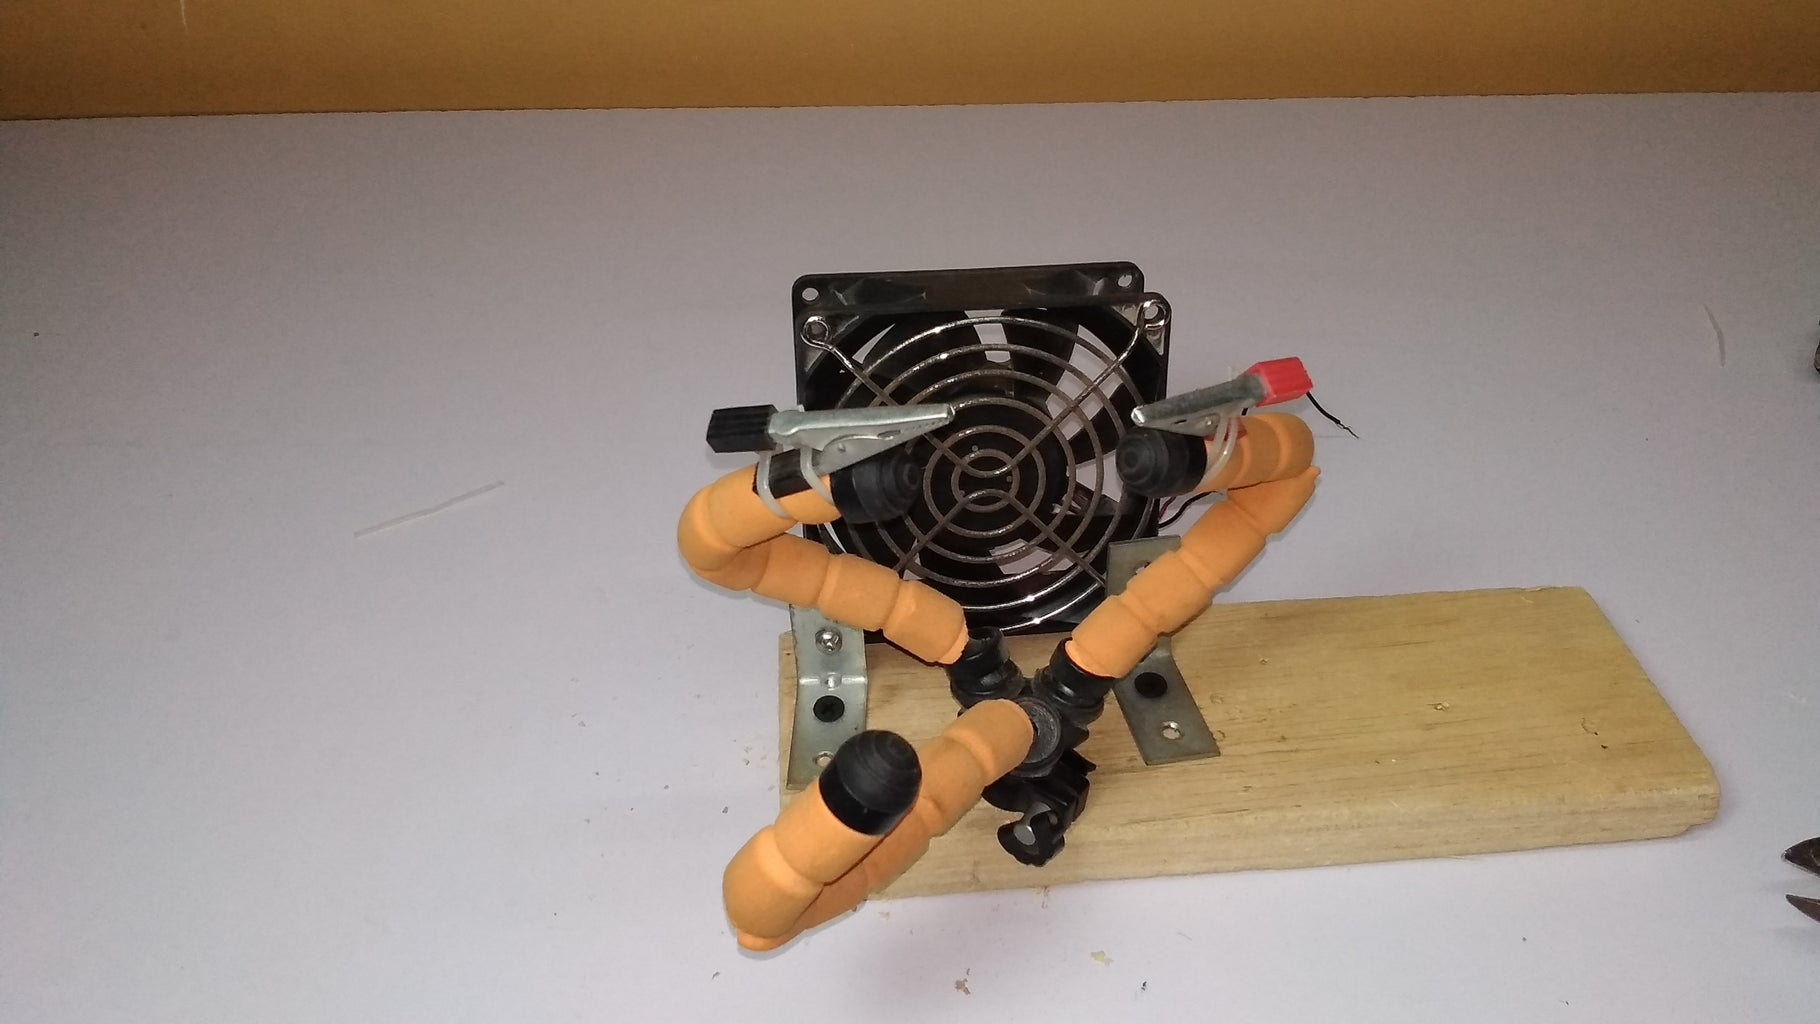 Placing Fan and Stand